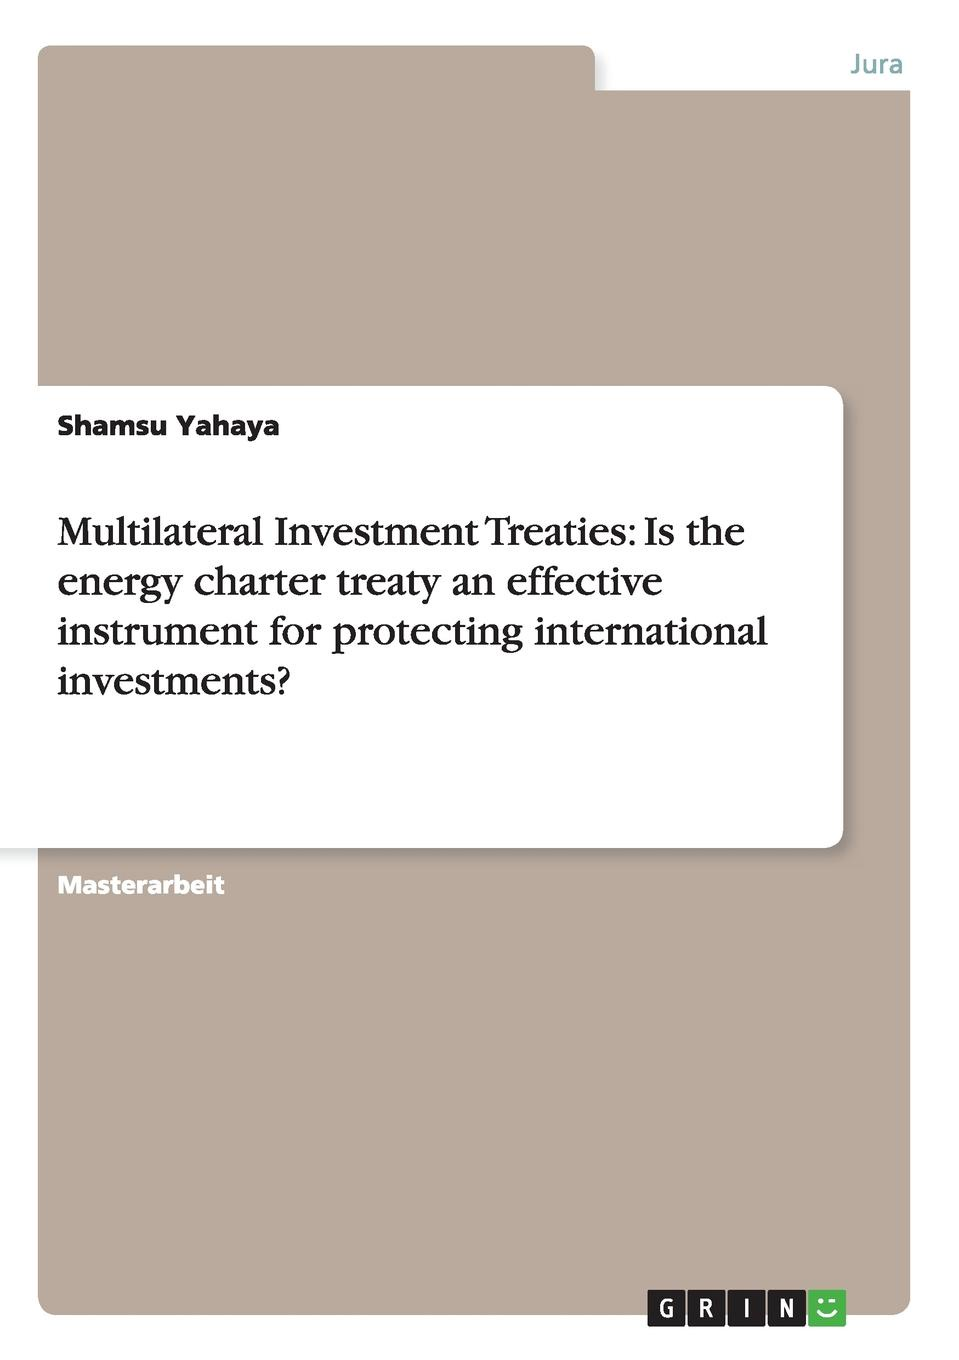 Shamsu Yahaya Multilateral Investment Treaties. Is the energy charter treaty an effective instrument for protecting international investments.